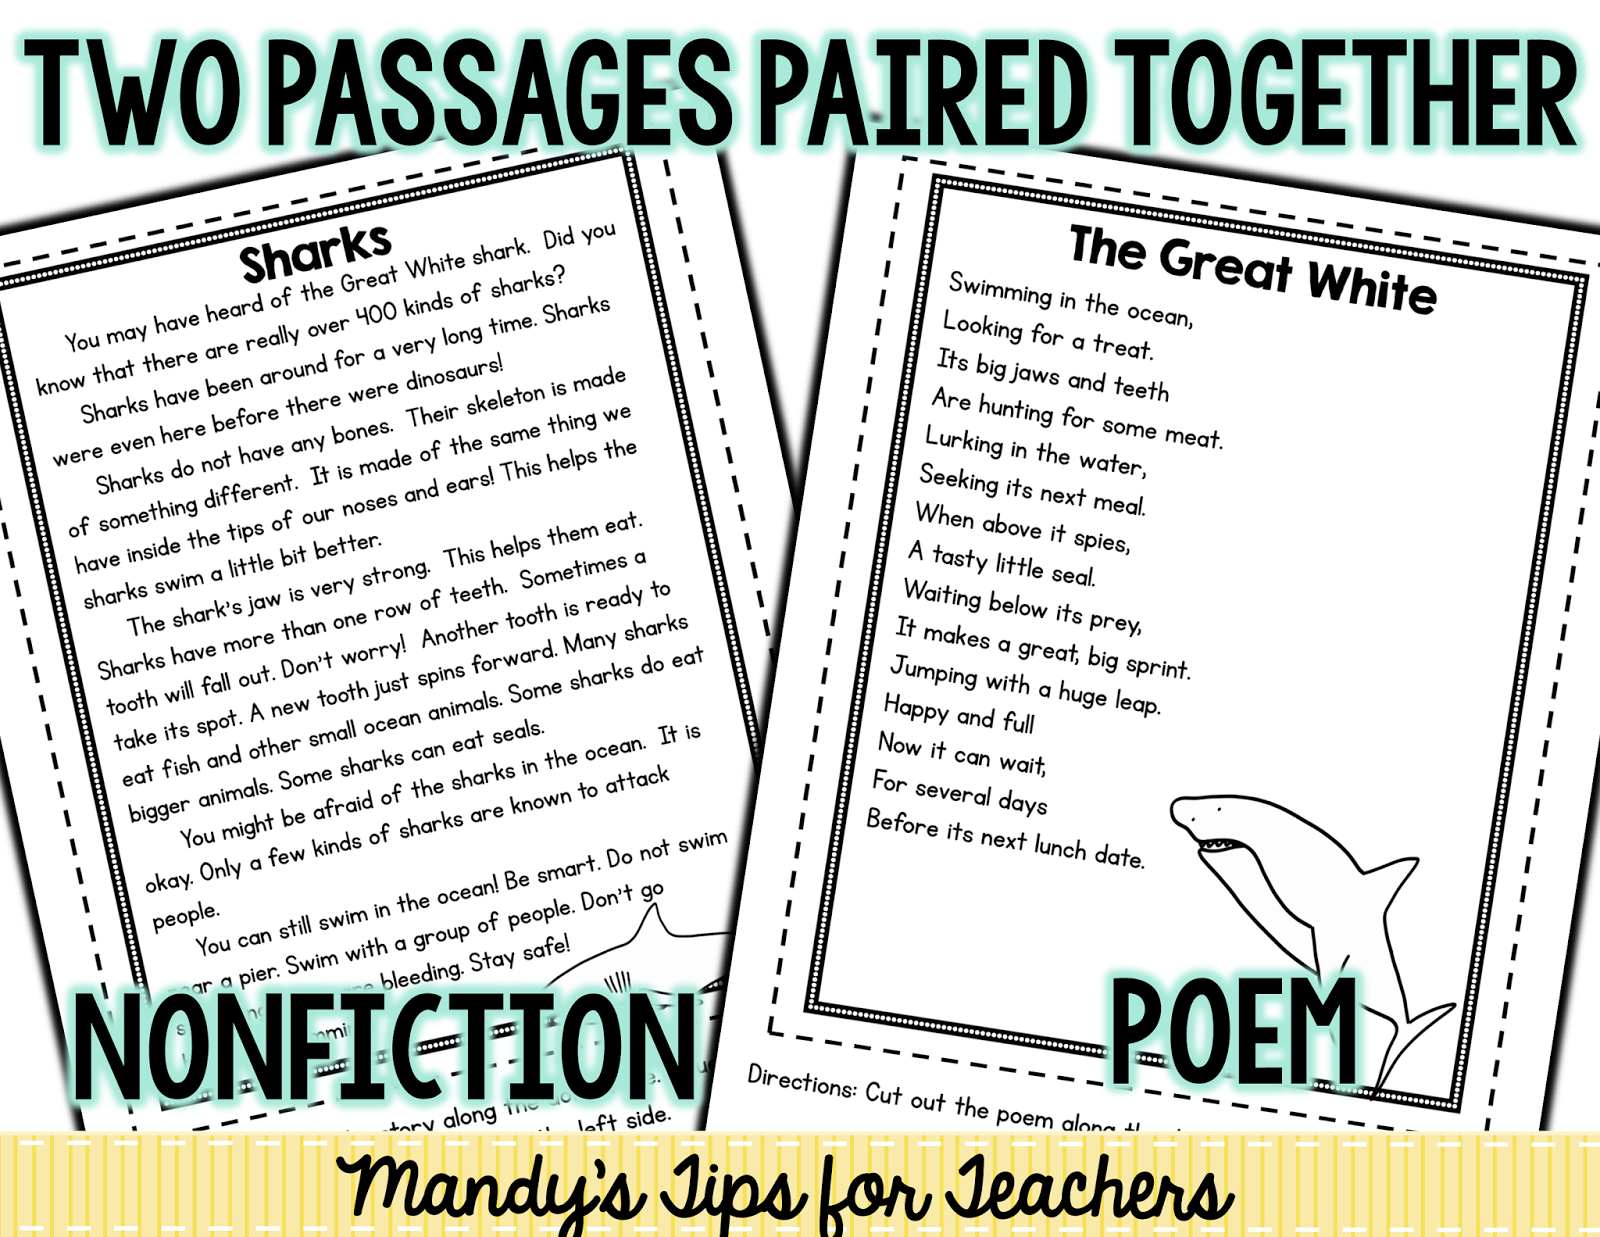 Worksheet Nonfiction Text Passages paired reading passages freebie mandys tips for teachers in this pack i included a nonfiction passage and poem that wrote about sharks wanted to make sure the could reac